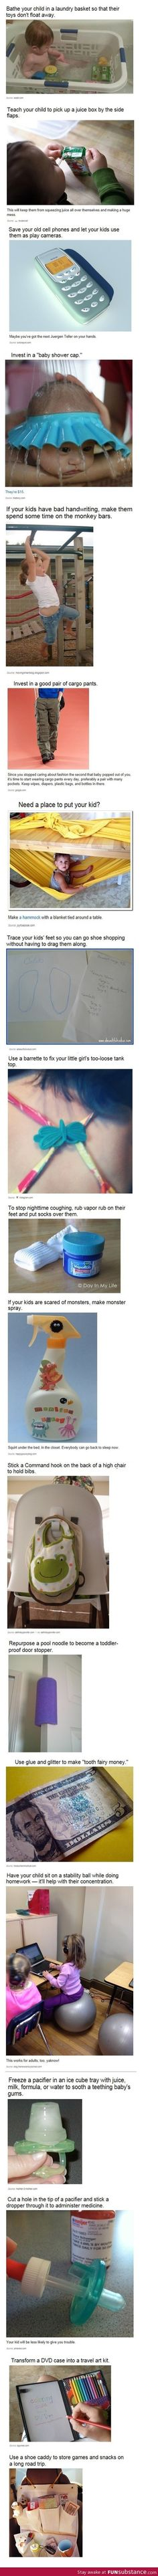 Some brilliant parenting tips! awesome